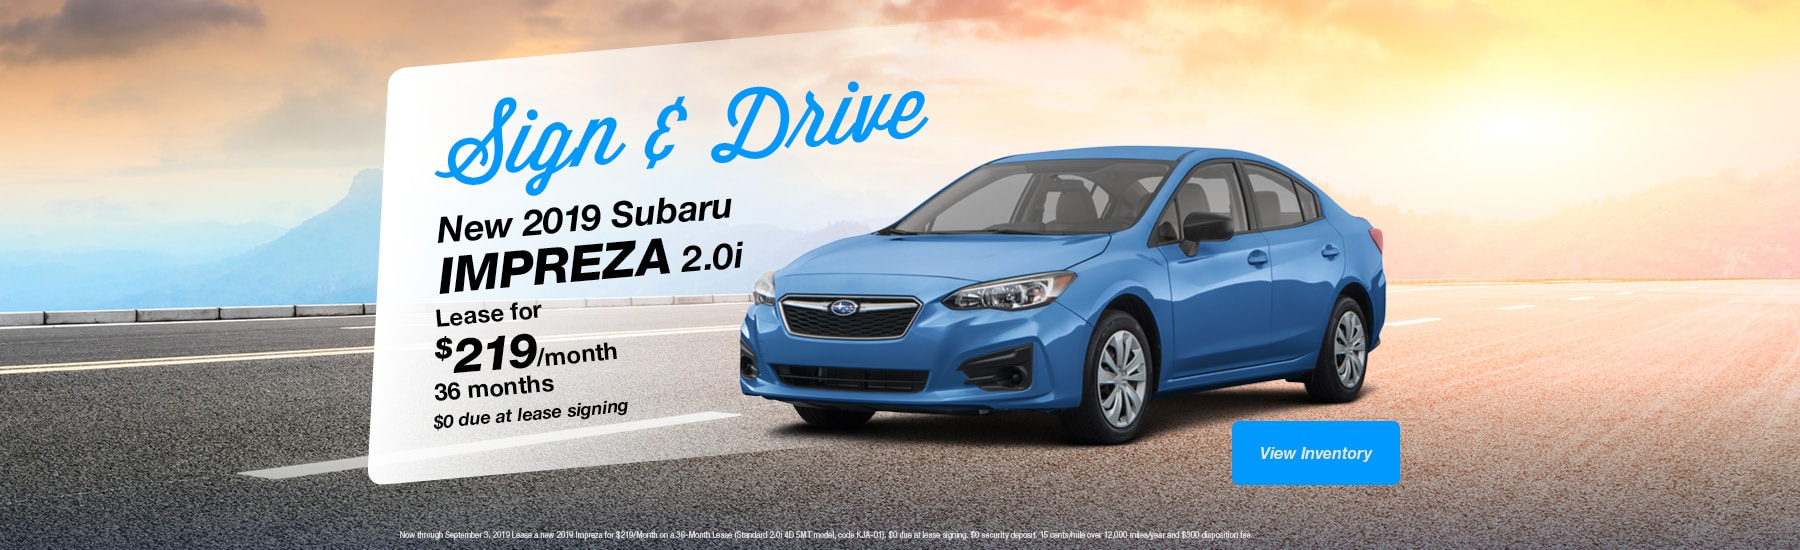 Garcia Subaru | New & Used Subaru Dealership in Albuquerque